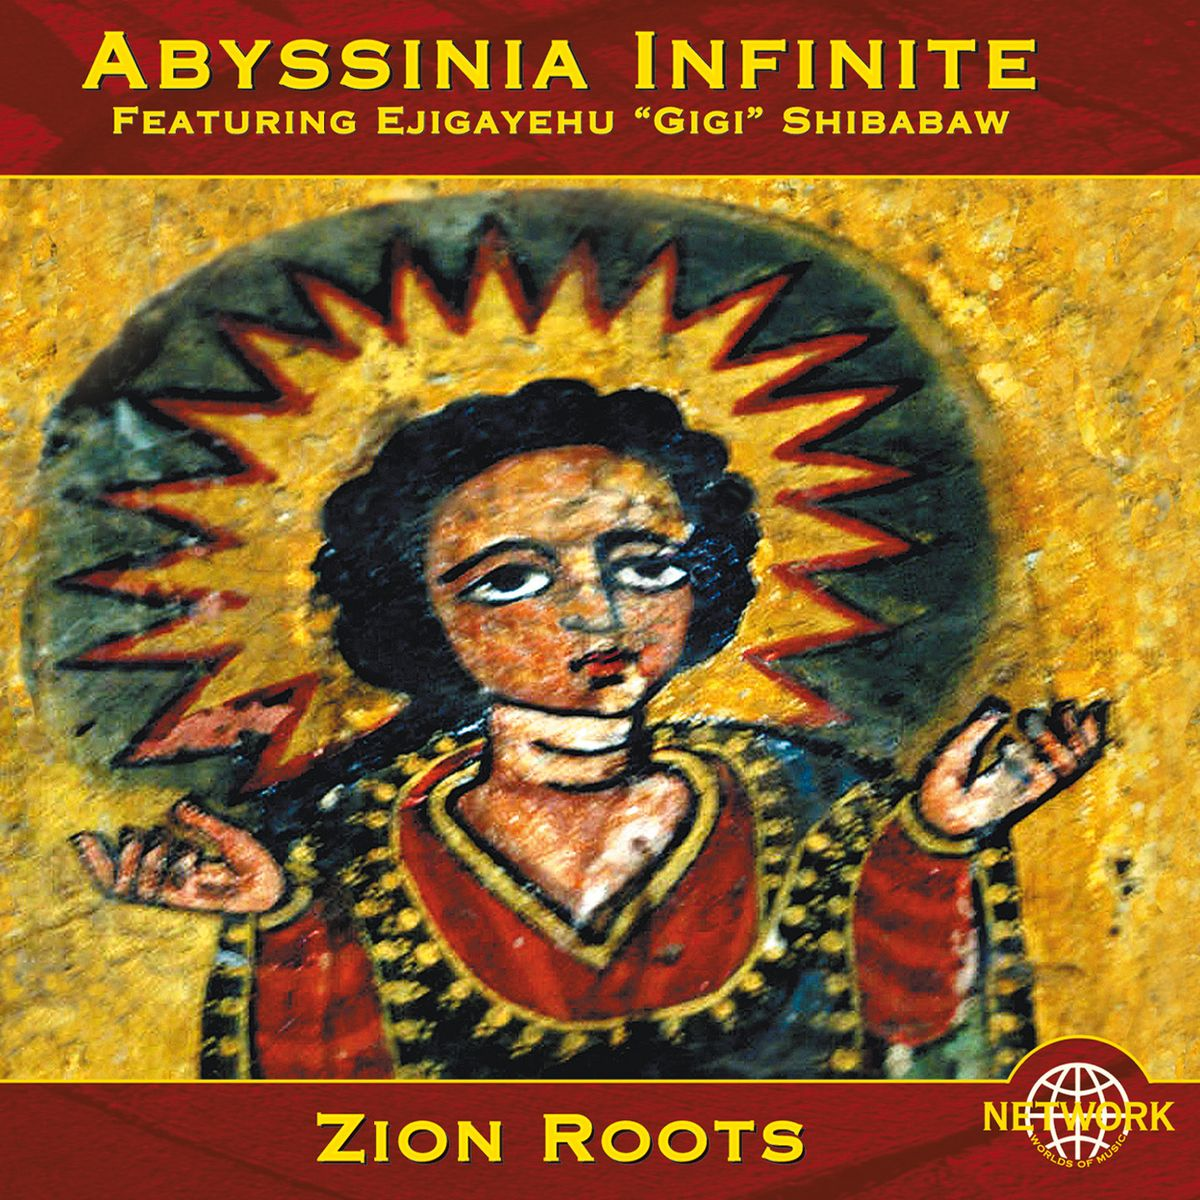 Abyssinia Infinite Abyssinia Infinite. Zion Roots 3 6 8 7 10 9 12